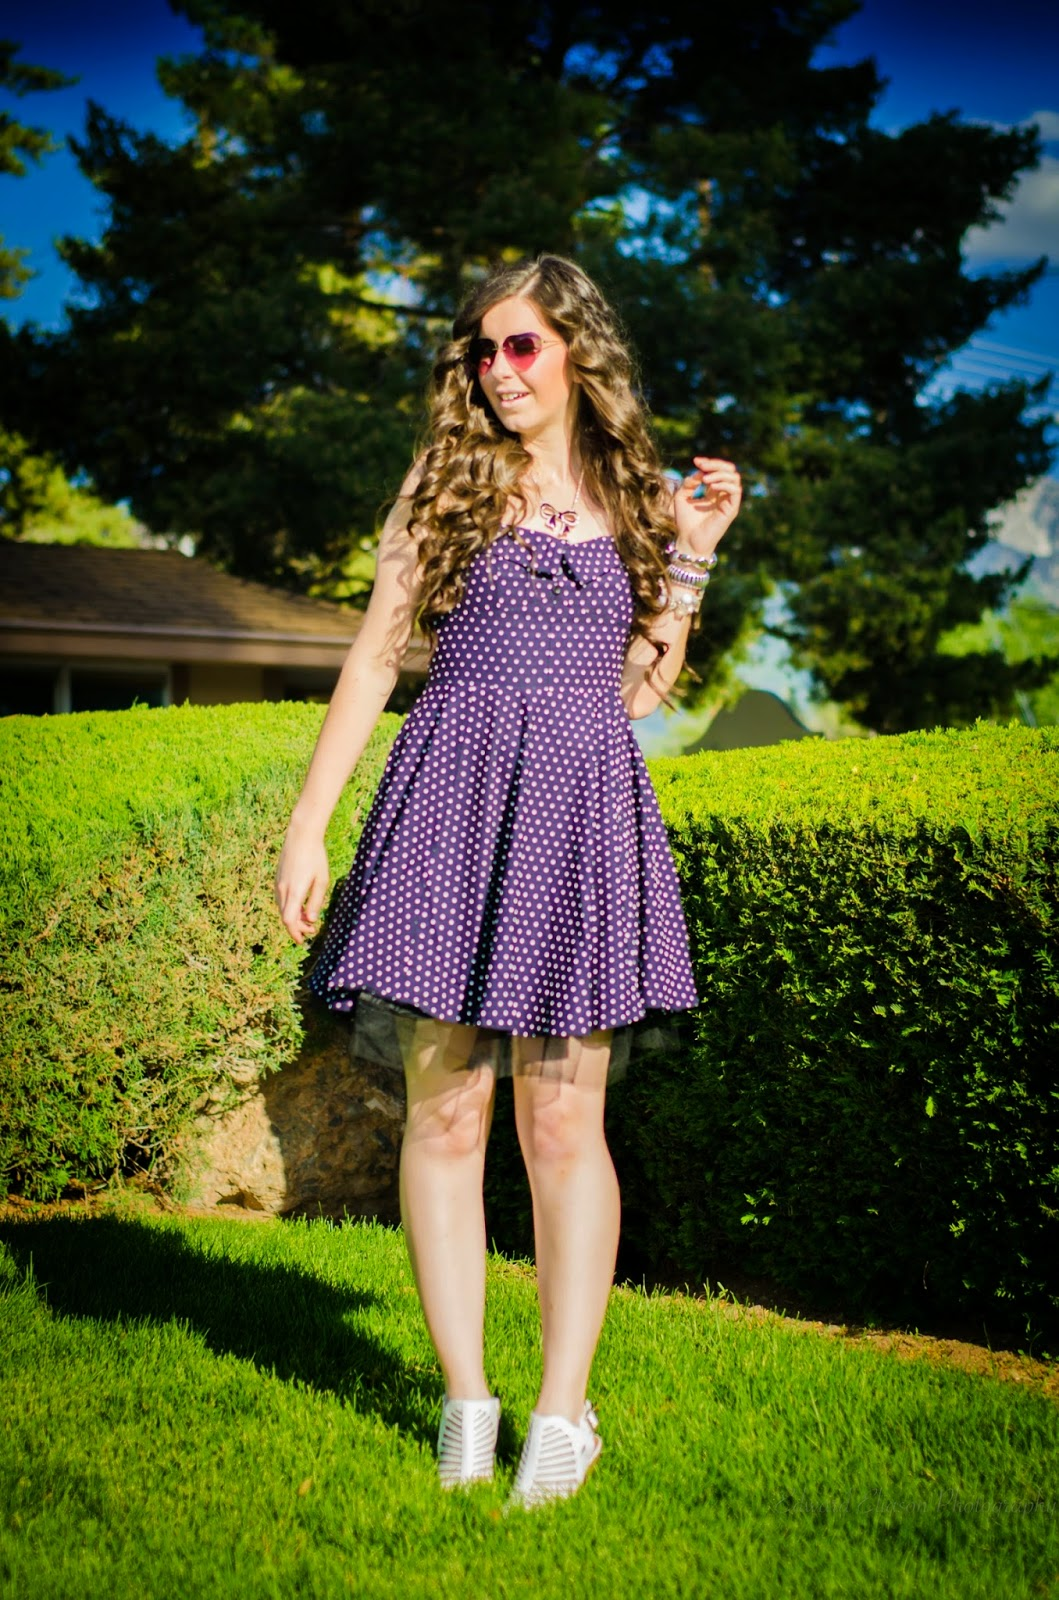 vintage polka dot dress, Edward Eliason Photography, polka dot dress, cut out heels, white heels, polka dot outfit, pretty outfit, vintage inspired, cute, arm candy, heart sunglasses, sunnies,